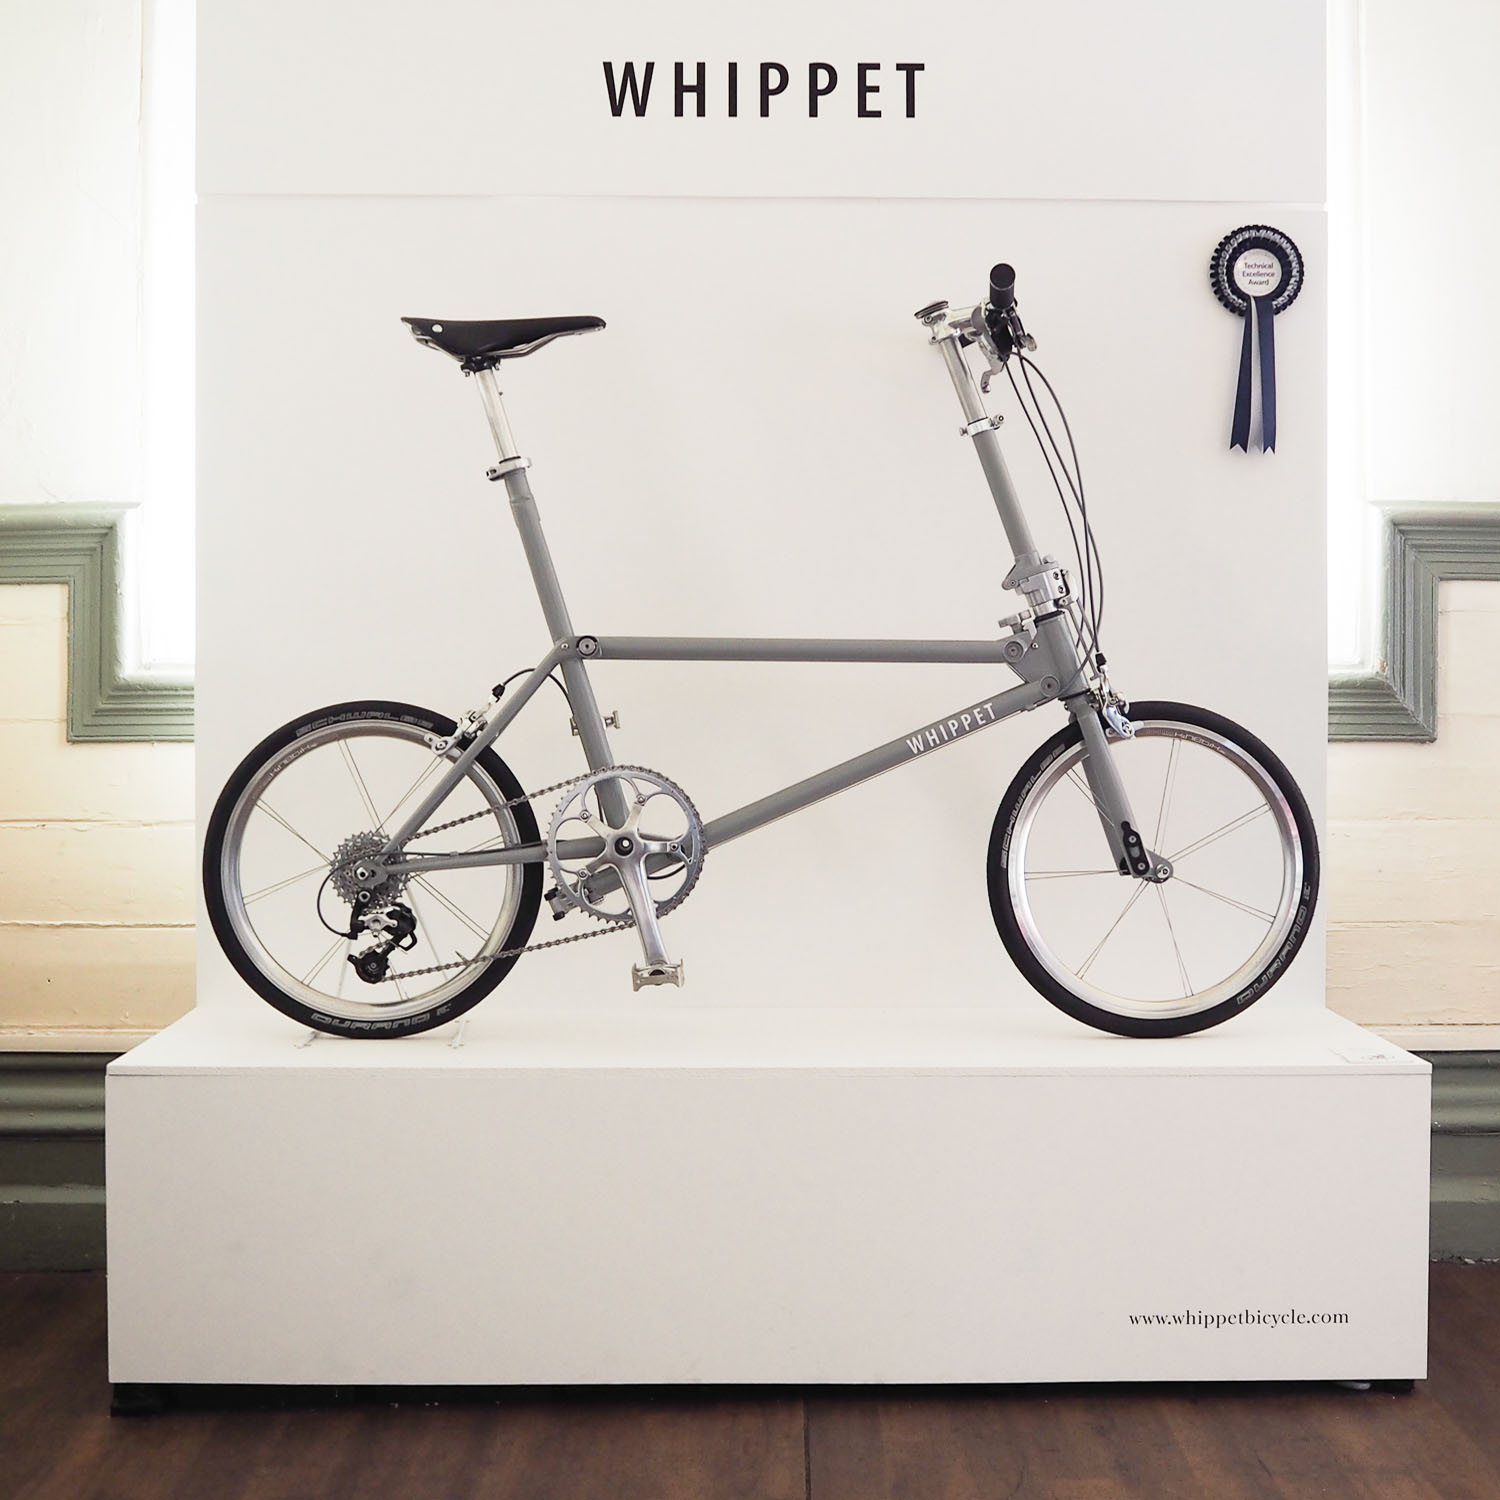 WHIPPET BICYCLE at Bespoked 2017 - stand- Graham-Powell.jpg